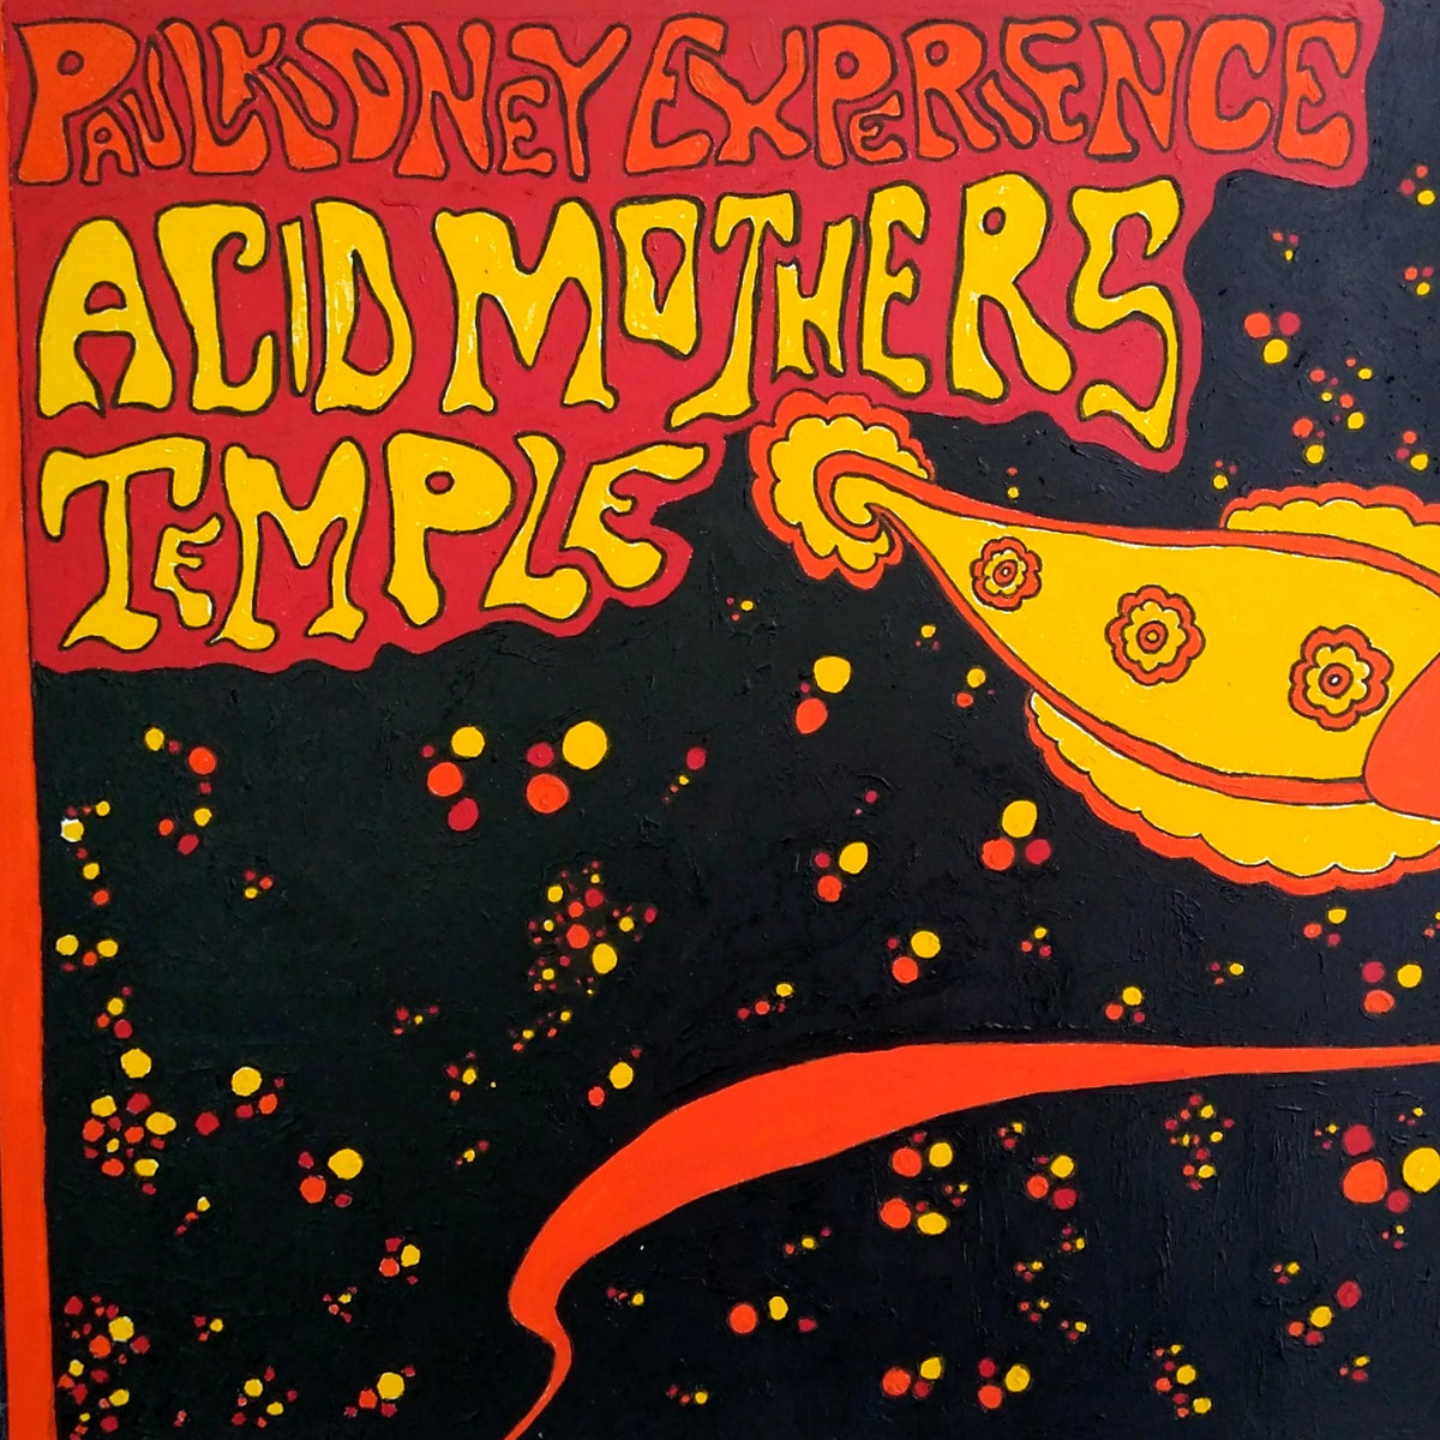 ACID MOTHERS TEMPLE  PAUL KIDNEY EXPERIENCE - ACID MOTHERS TEMPLE  PAUL KIDNEY EXPERIENCE LP